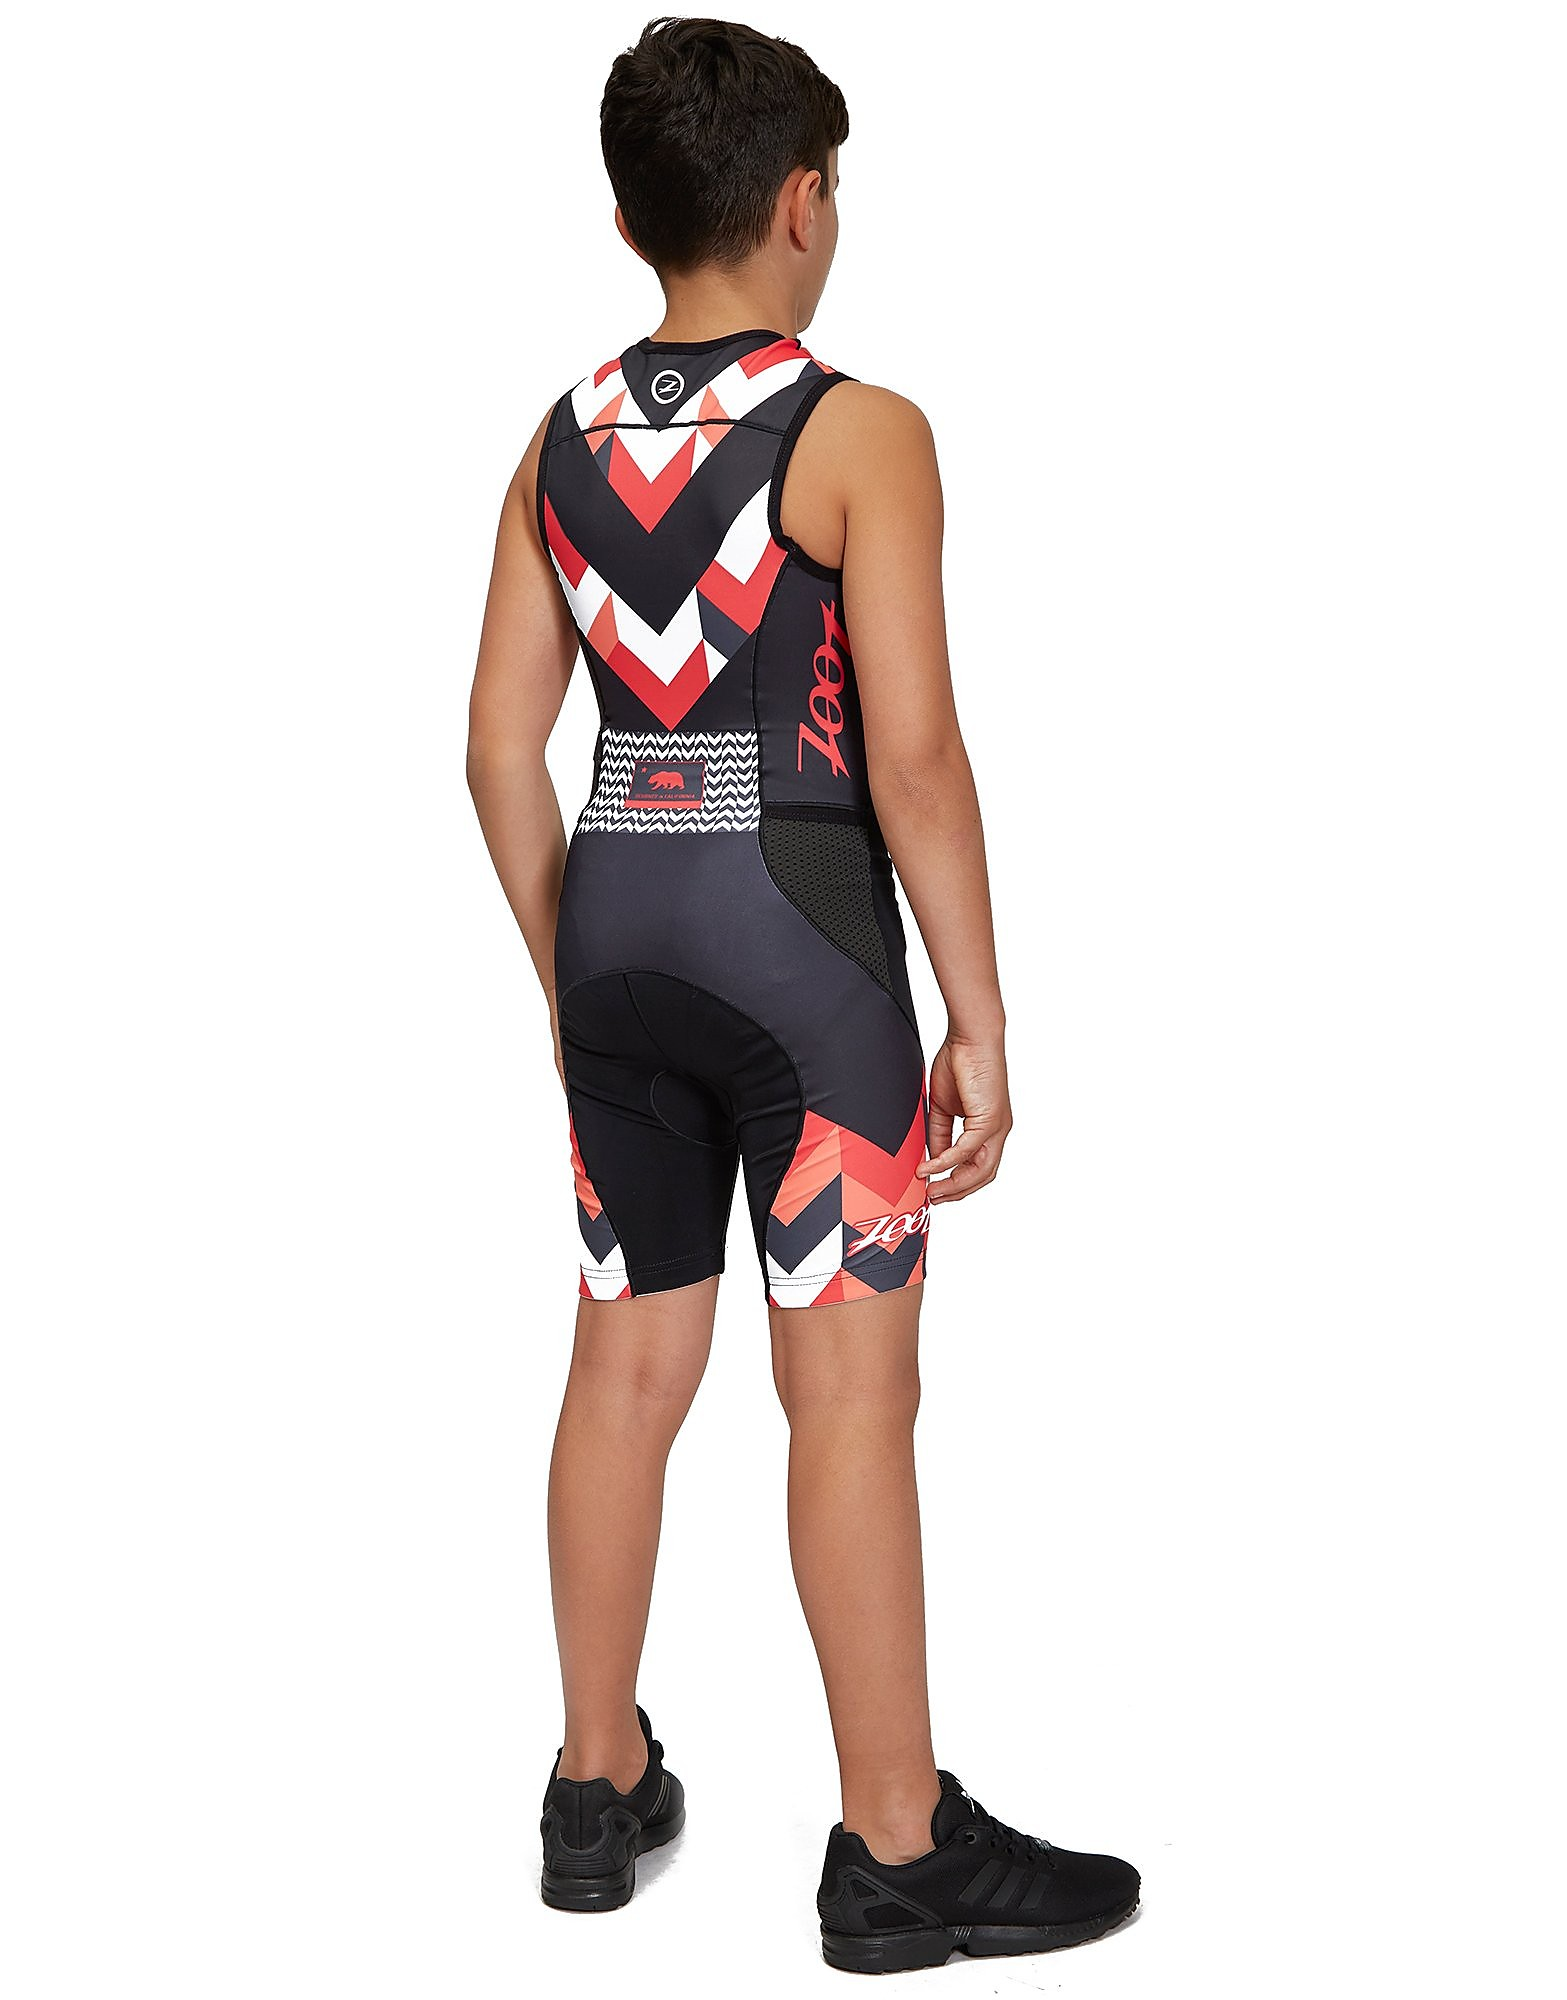 Zoot Protege Tri Suit Junior